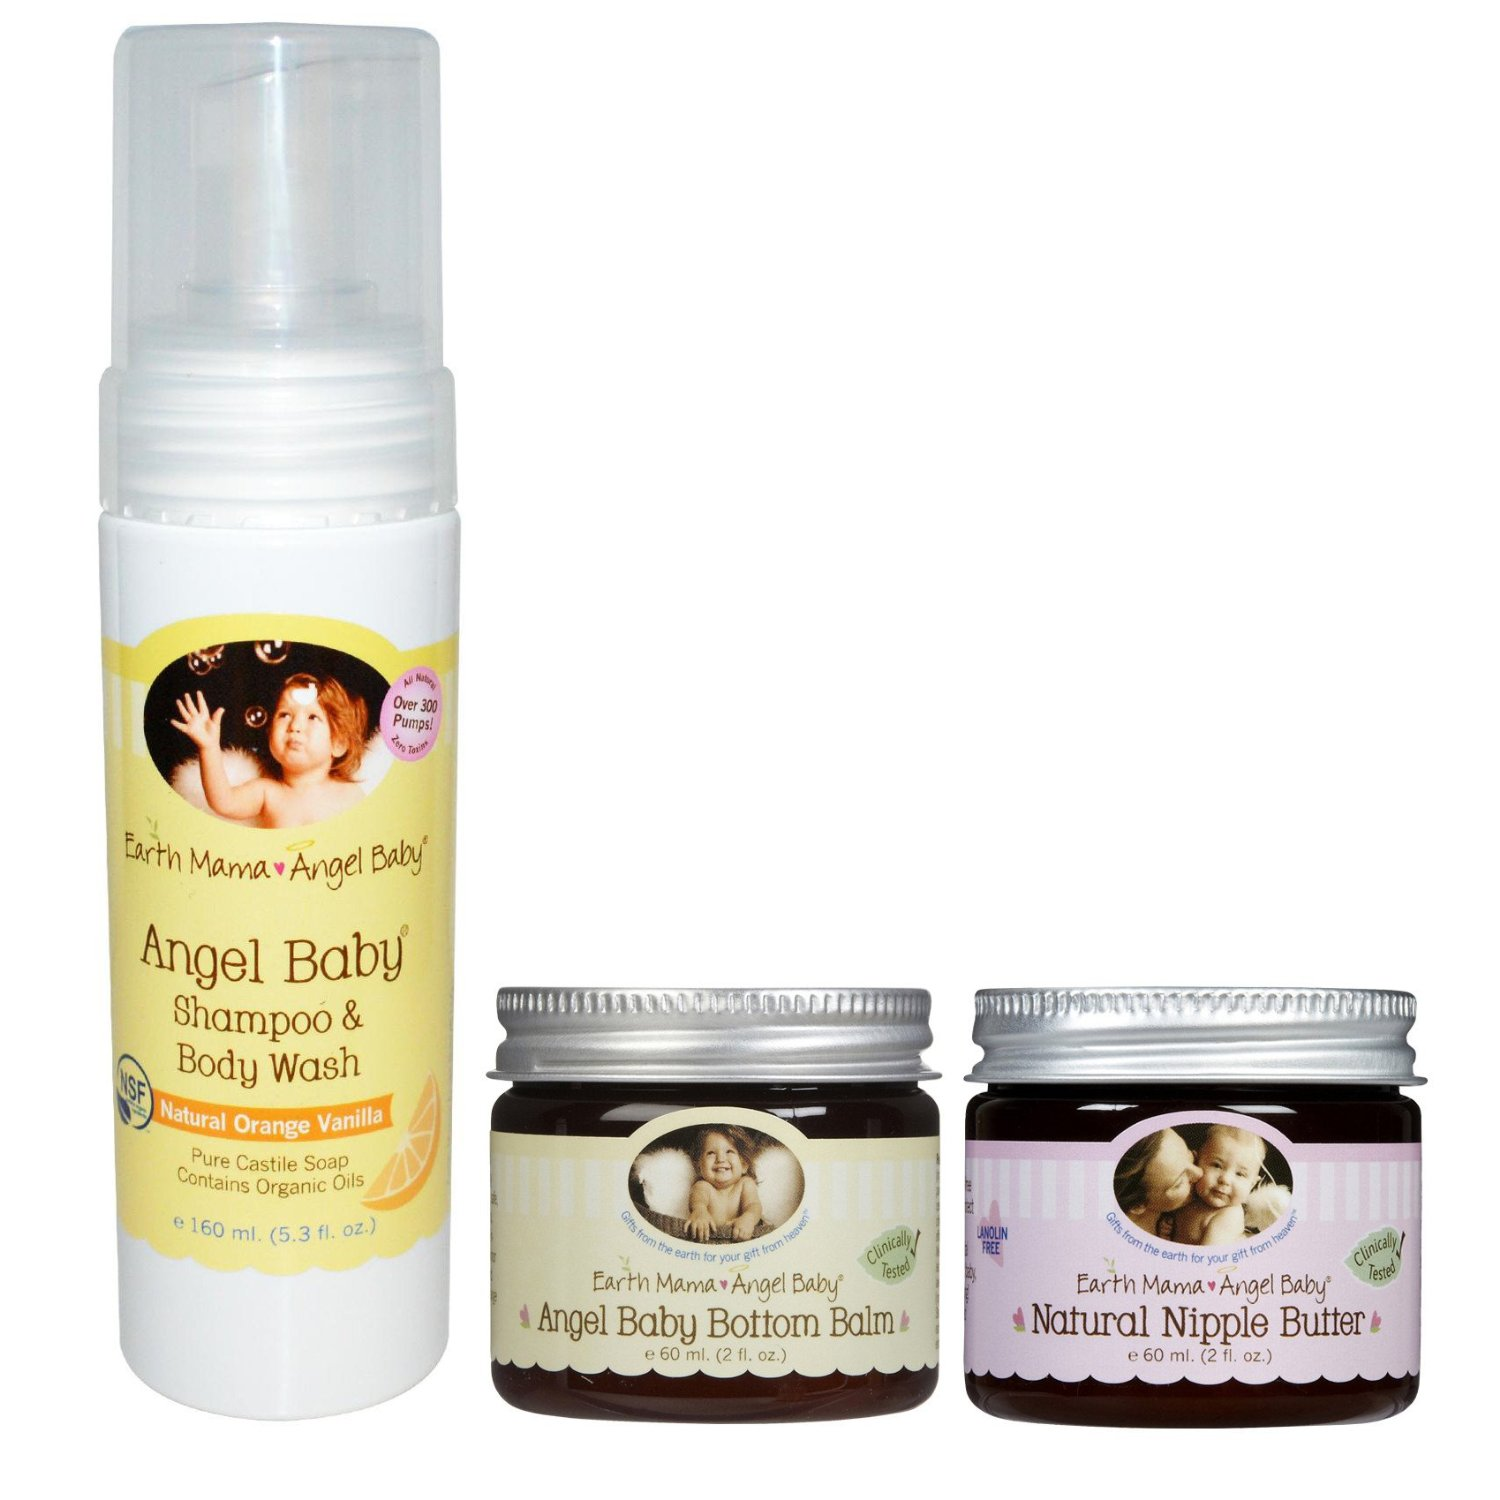 Earth Mama Angel Baby Shampoo and Body Wash with Bottom Balm & Nipple Butter by Earth Mama